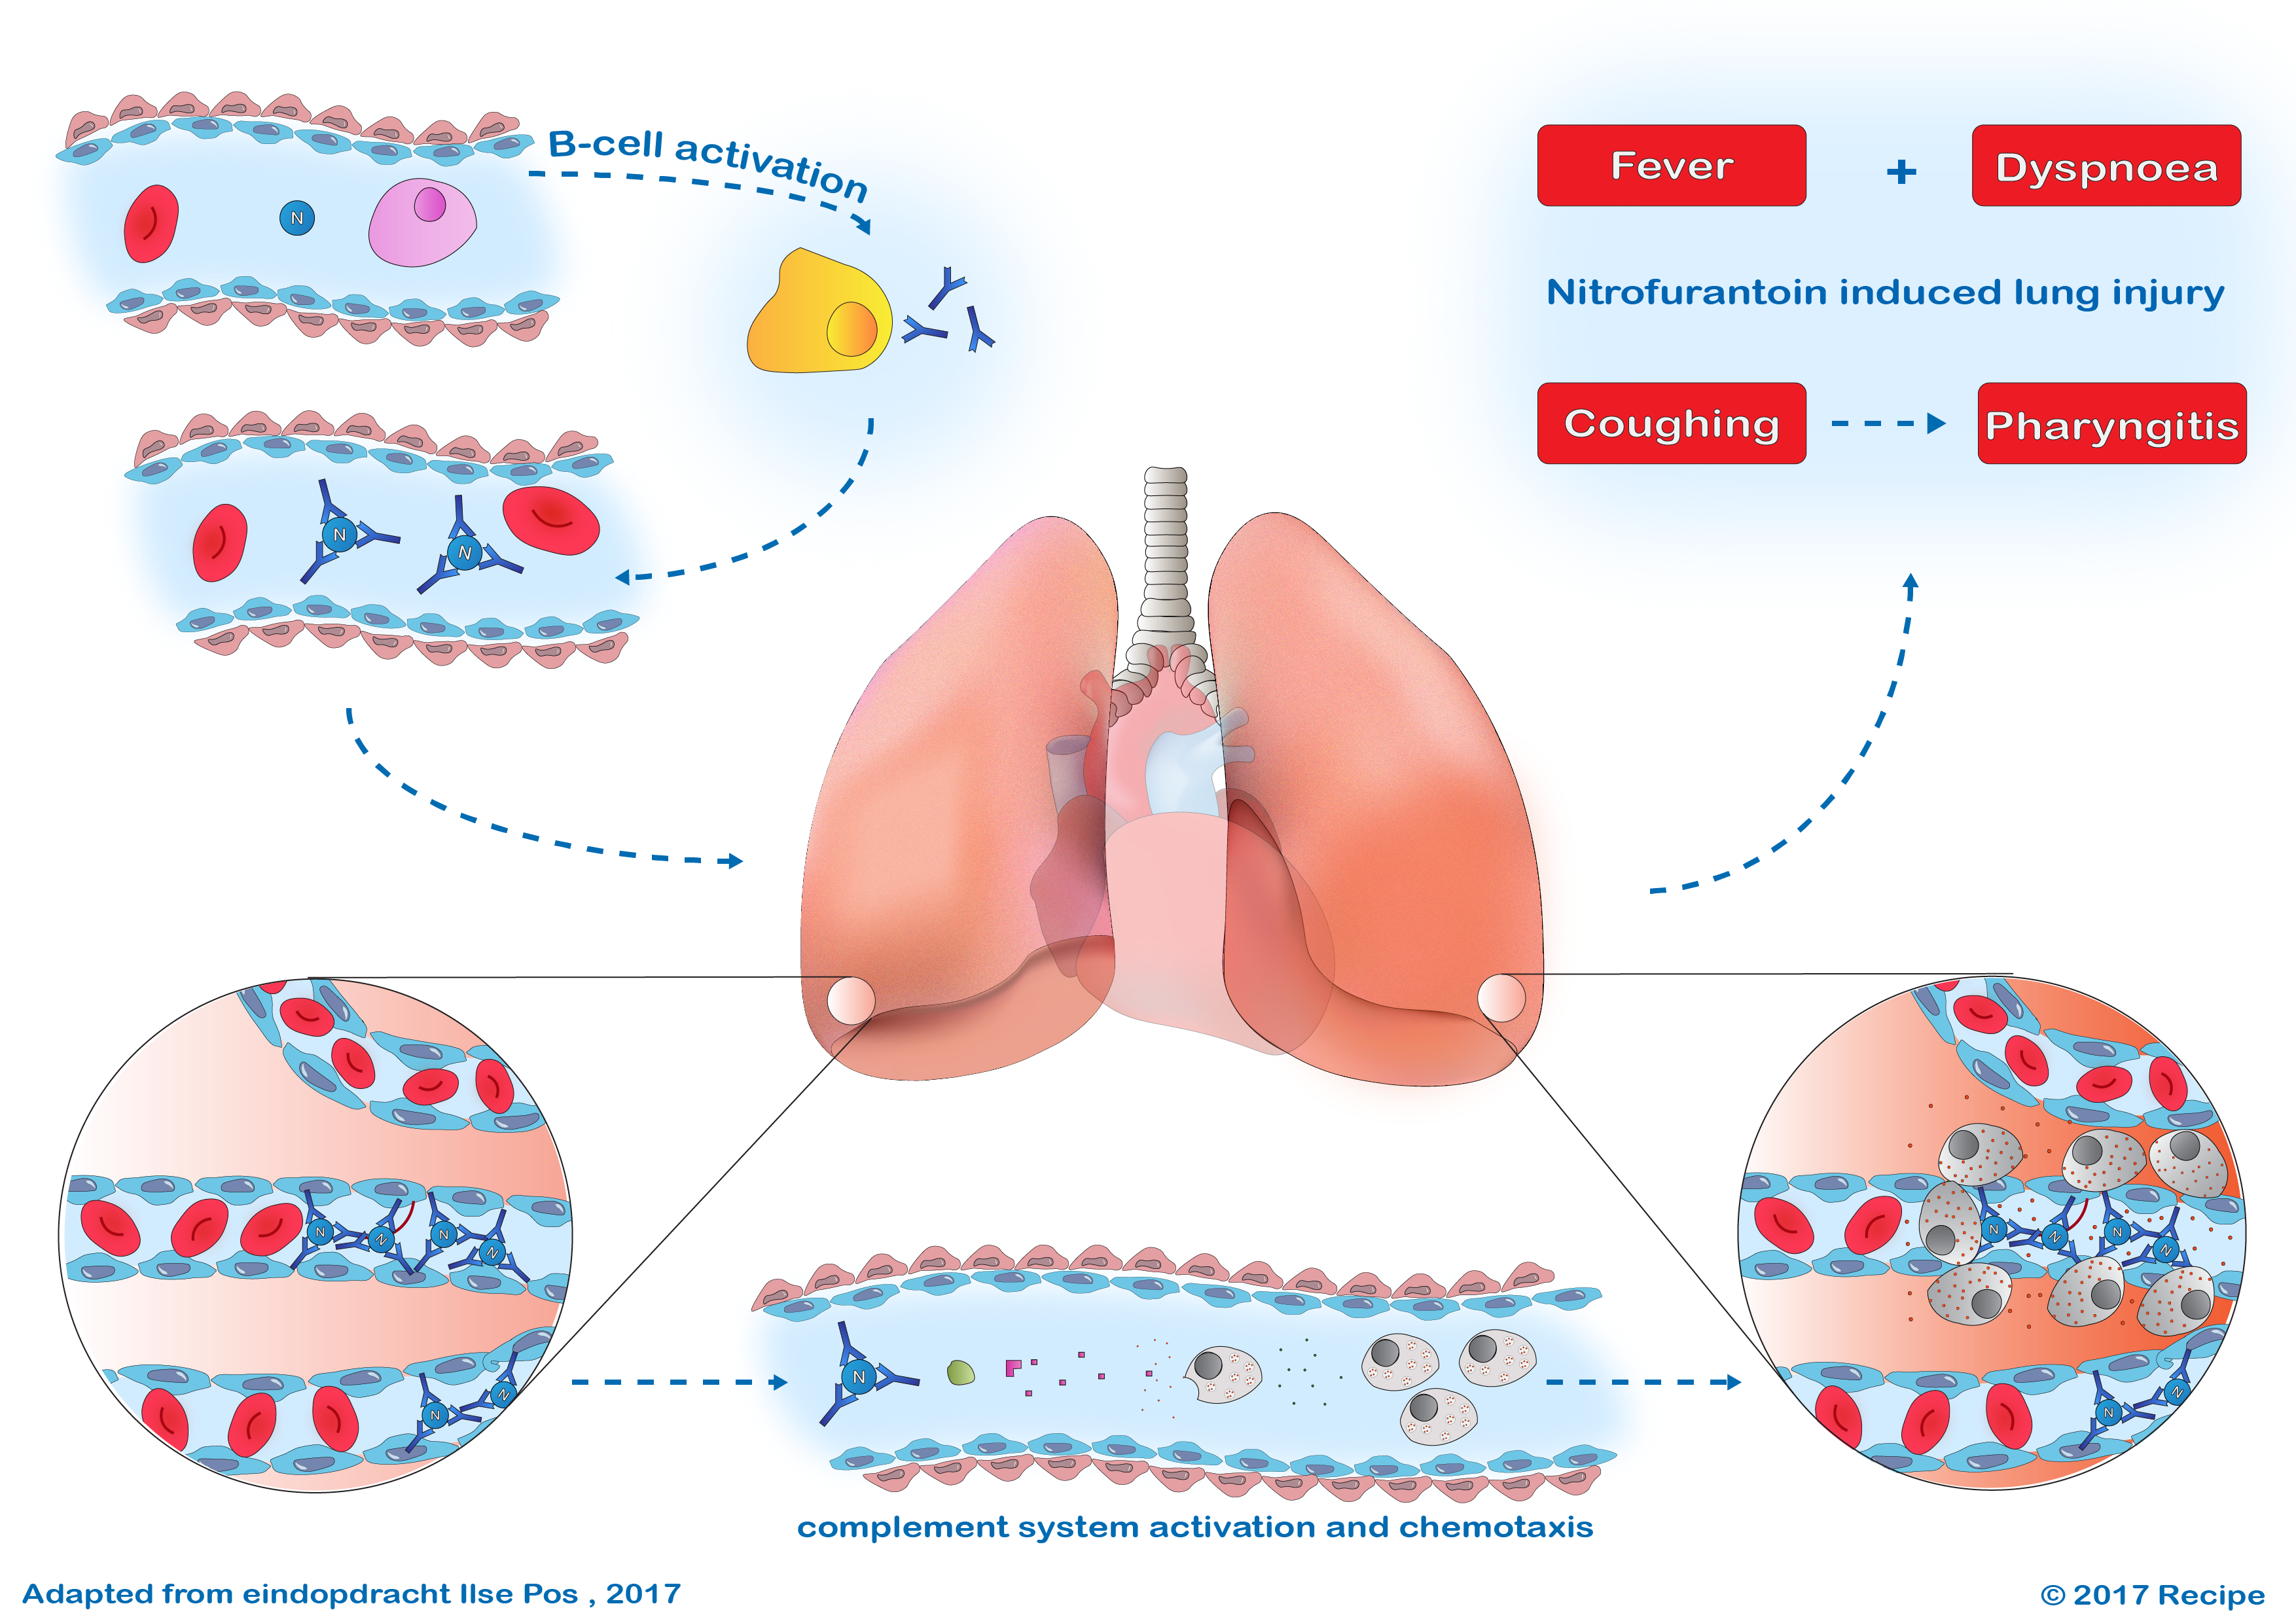 A rare side effect (interstitial pneumonitis) of nitrofurantoin